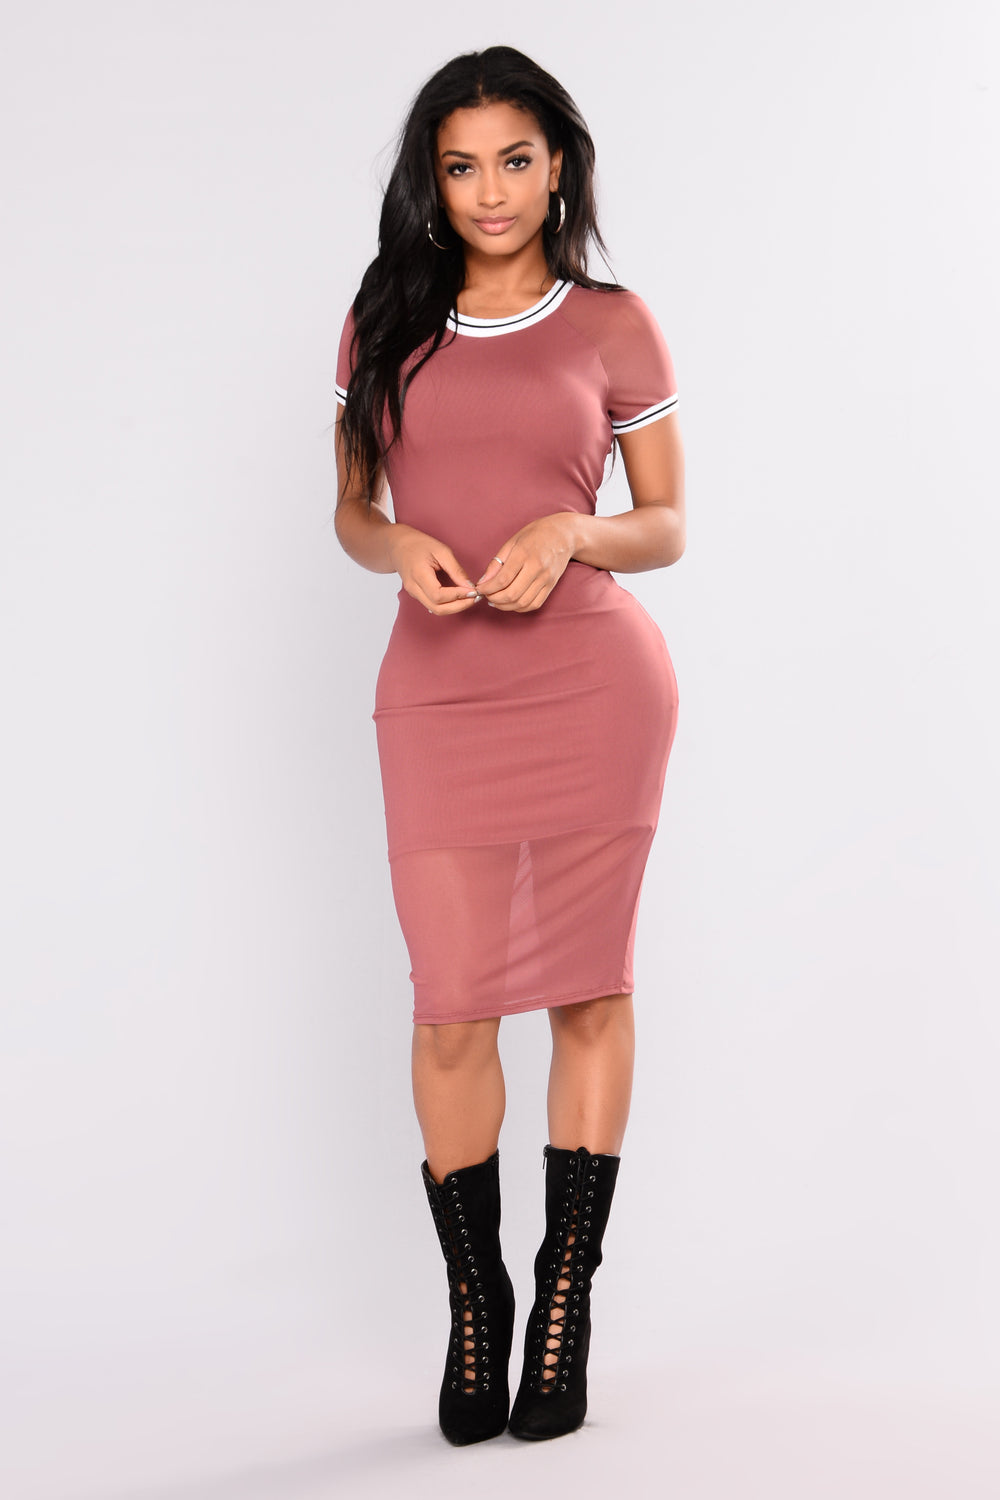 Fresher Than You Mesh Dress - Rose